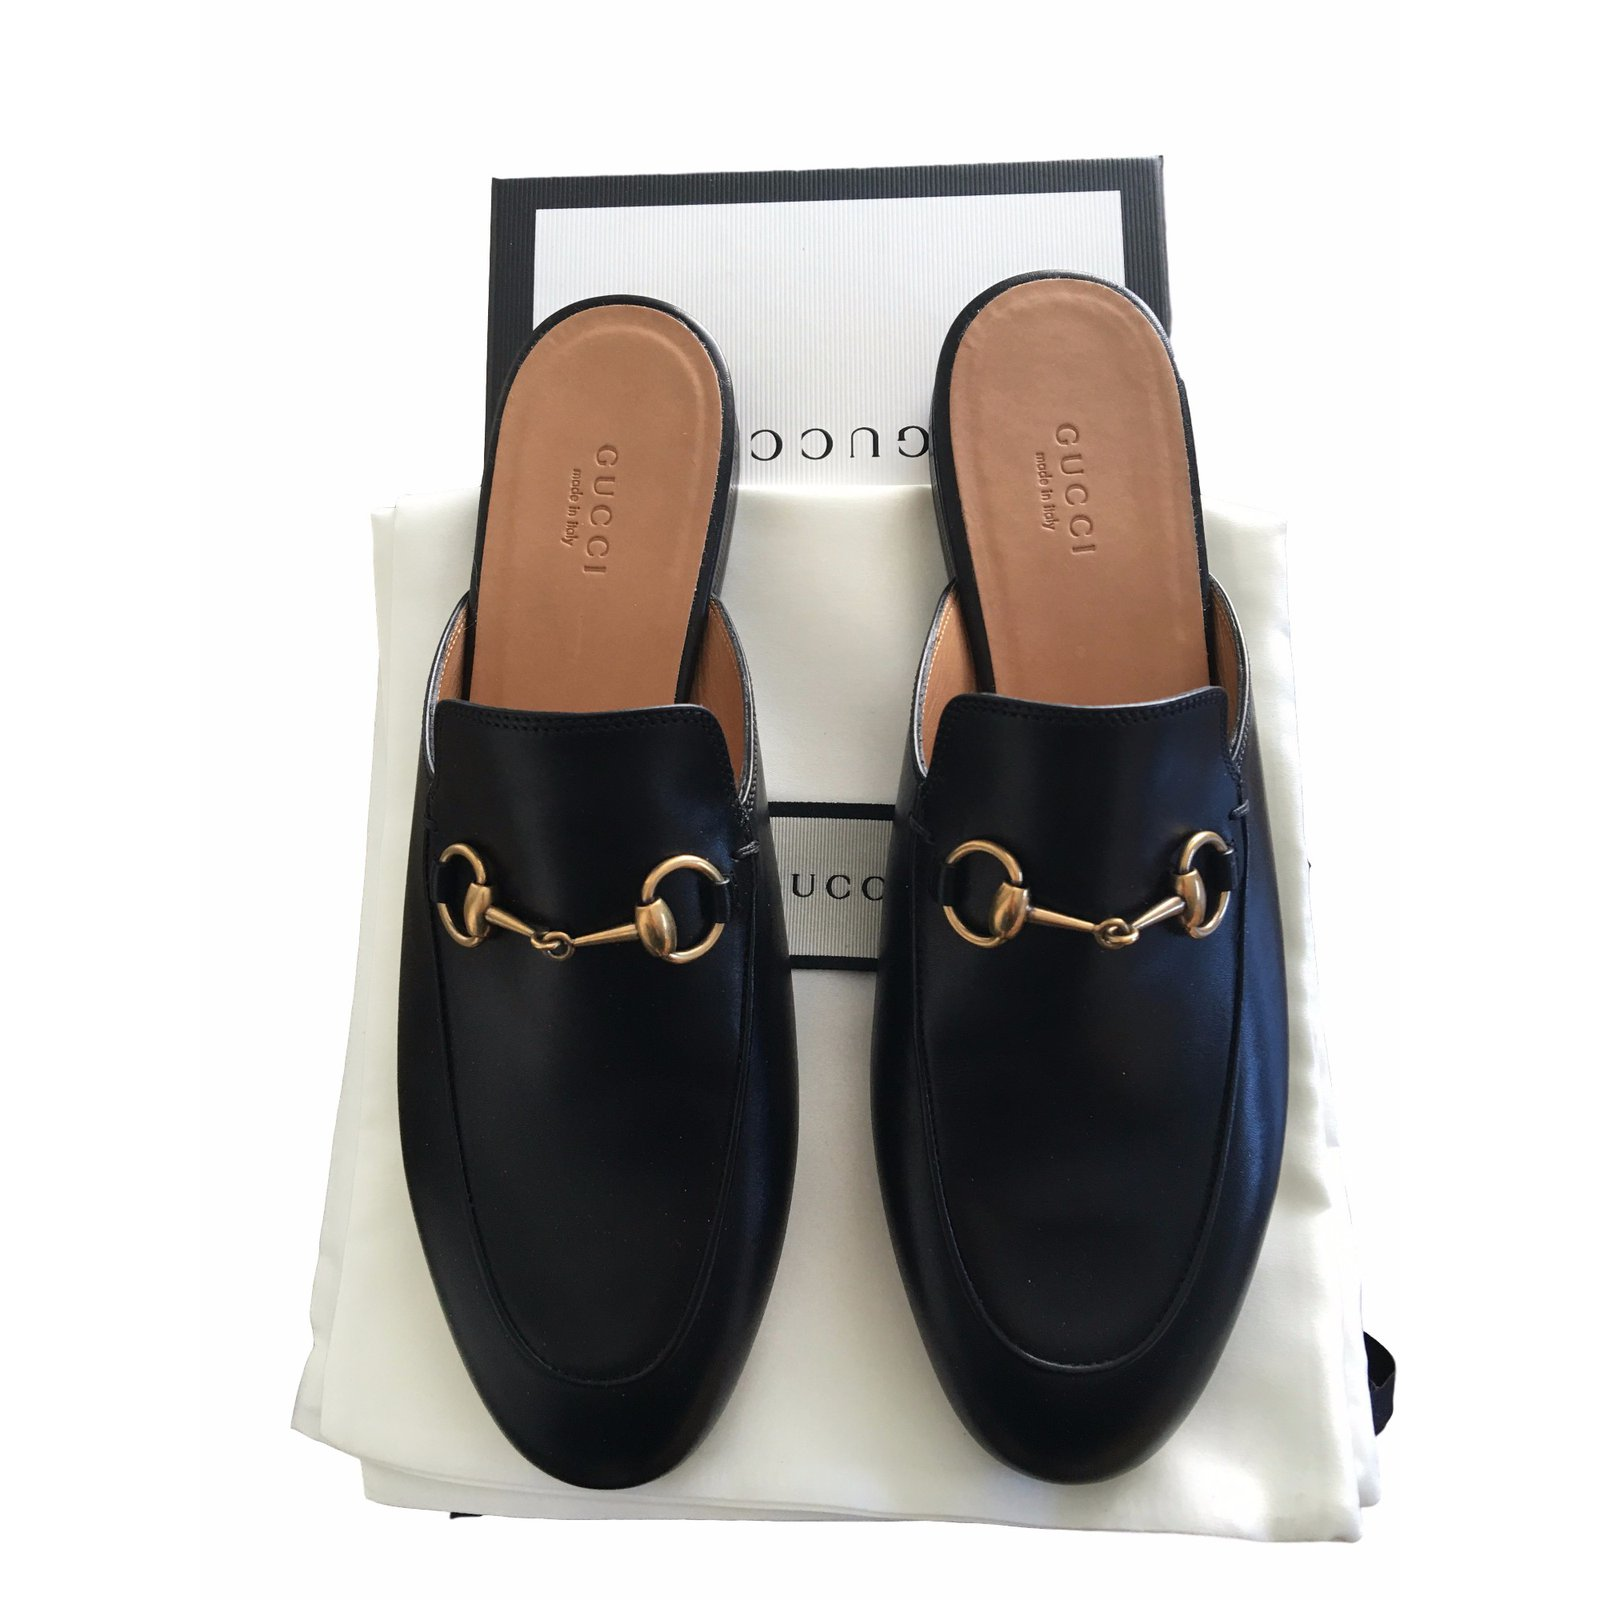 65d9c19f1f1 Gucci Gucci Princetown Leather Mules Mules Leather Black ref.17296 ...